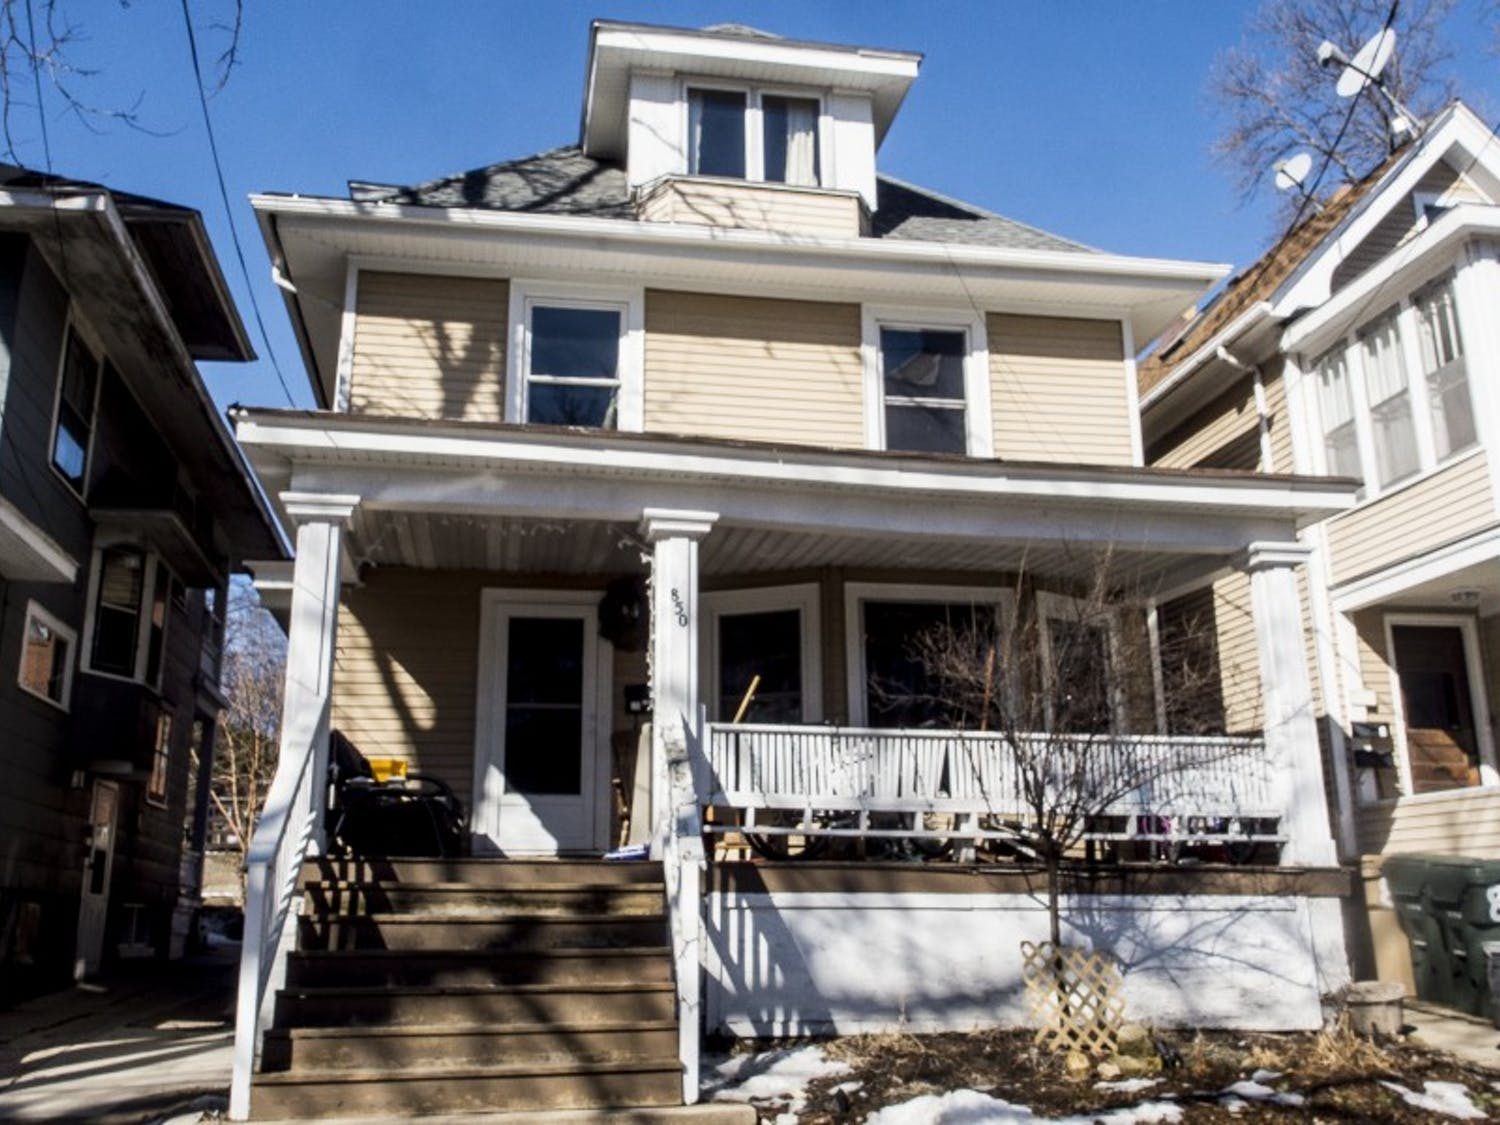 Aaron's Houseis one of three private sober-living houses near the UW-Madison campus and offers ahome to five students that go to school in the Madison area.